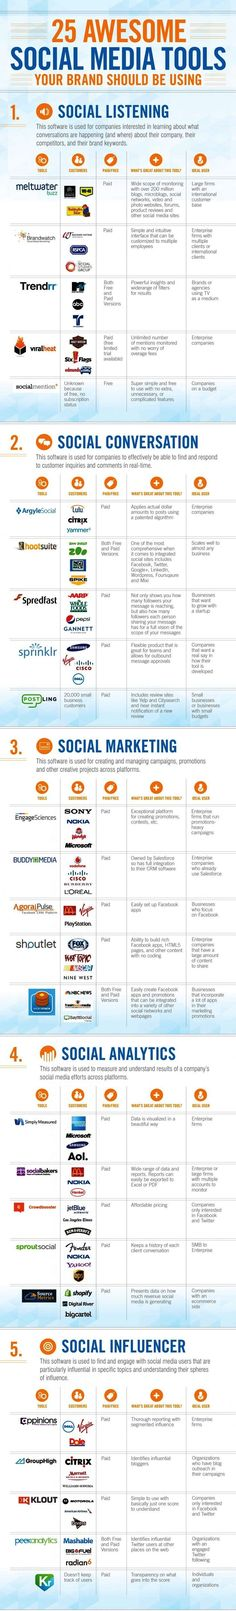 25 Awesome Social Media Tools - great infograhic highlighting valuable social listening, conversation, marketing, analytics, and influencer tools. Inbound Marketing, Social Marketing, Marketing Digital, Marketing Trends, Marketing En Internet, Marketing Online, Marketing Technology, Marketing Tools, Content Marketing